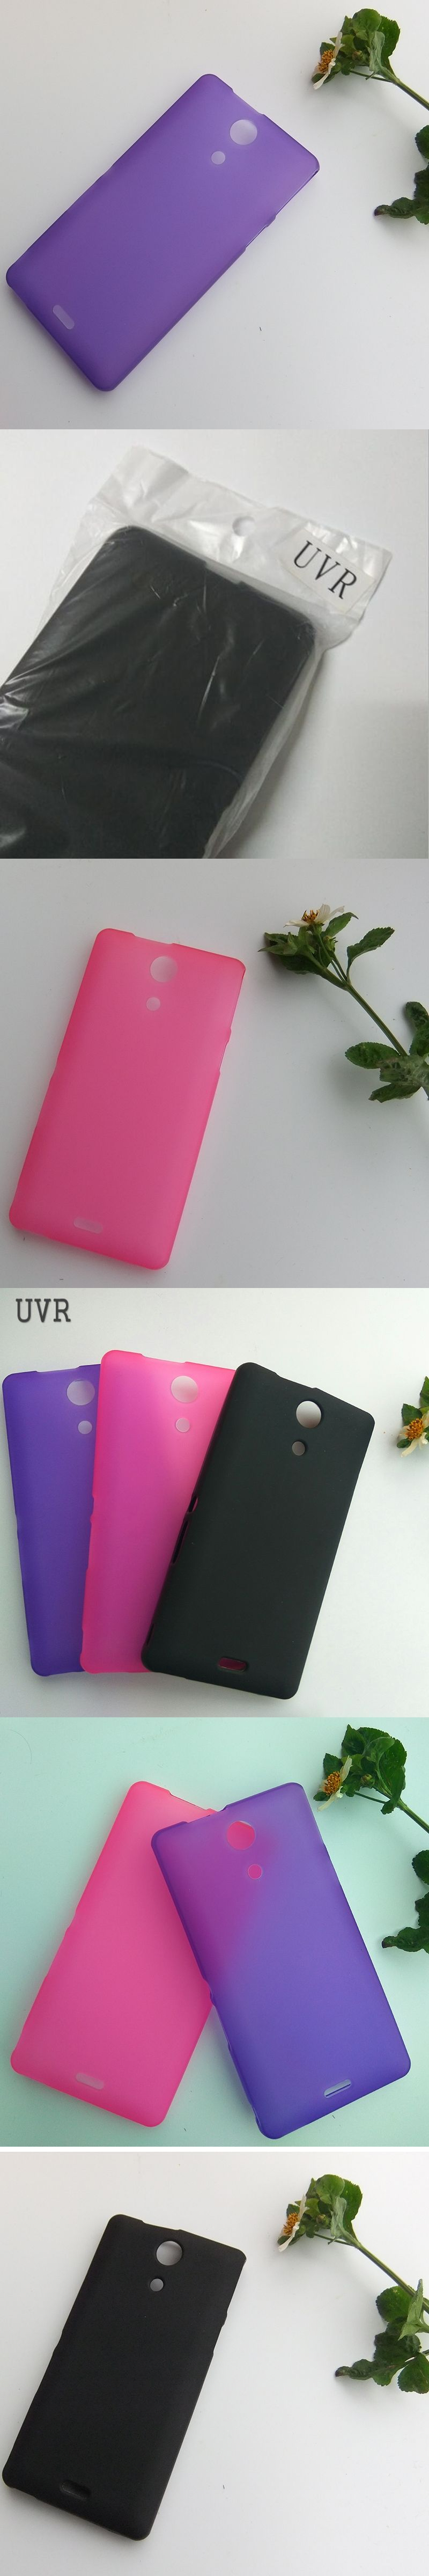 UVR Matte Soft TPU Silicone Gel Anti Knock Case Cover For Sony Xperia ZR C5502 C5503